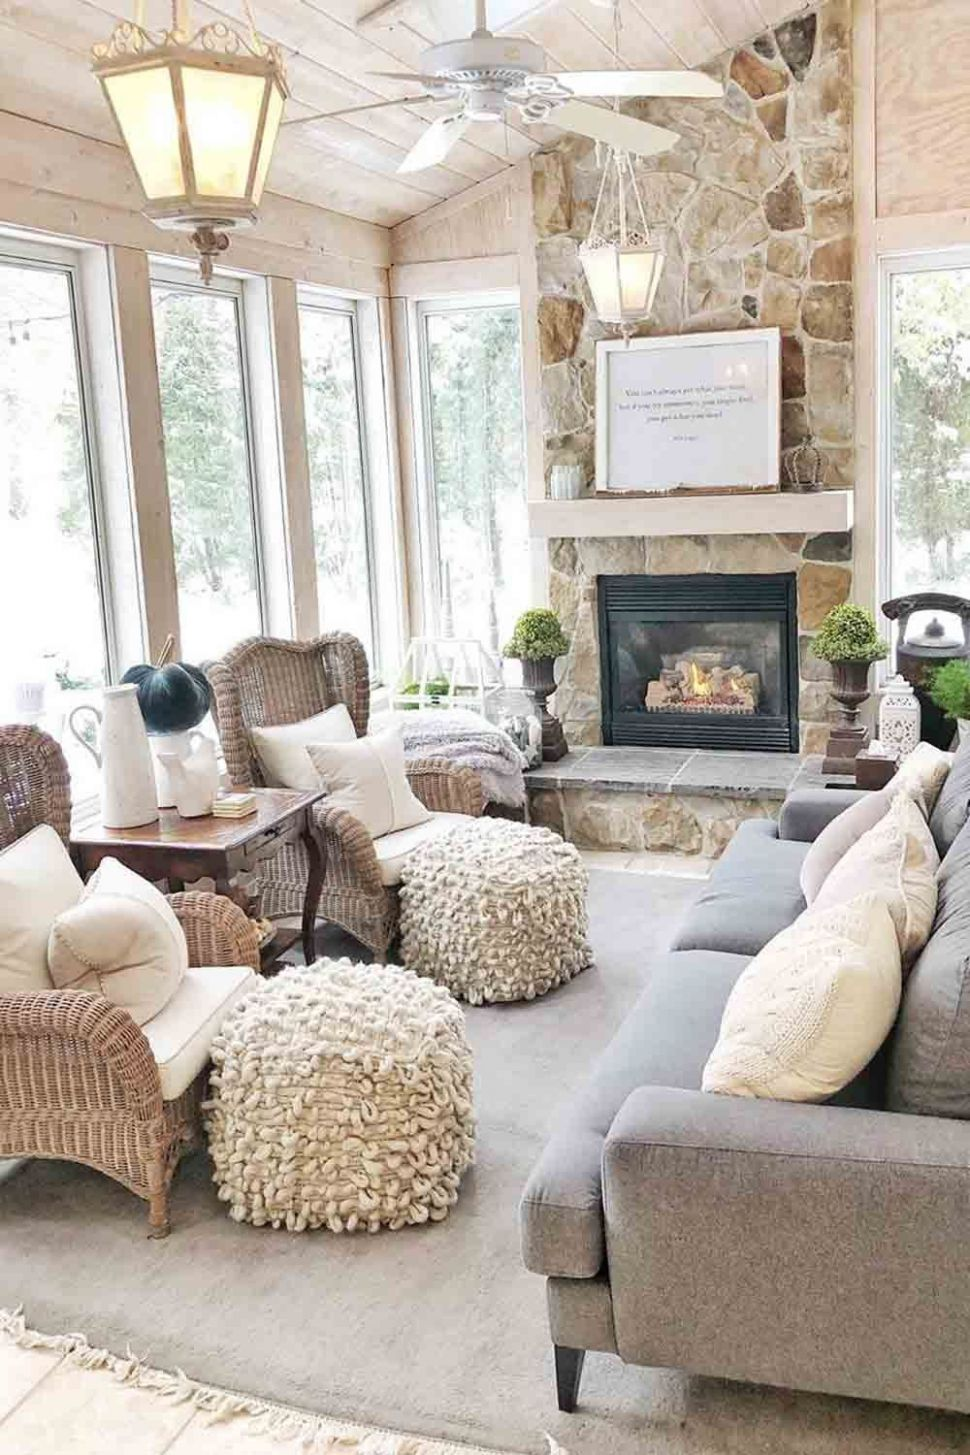 8 Sunroom Ideas: The Best Combo Of Indoor And Outdoor In One ..